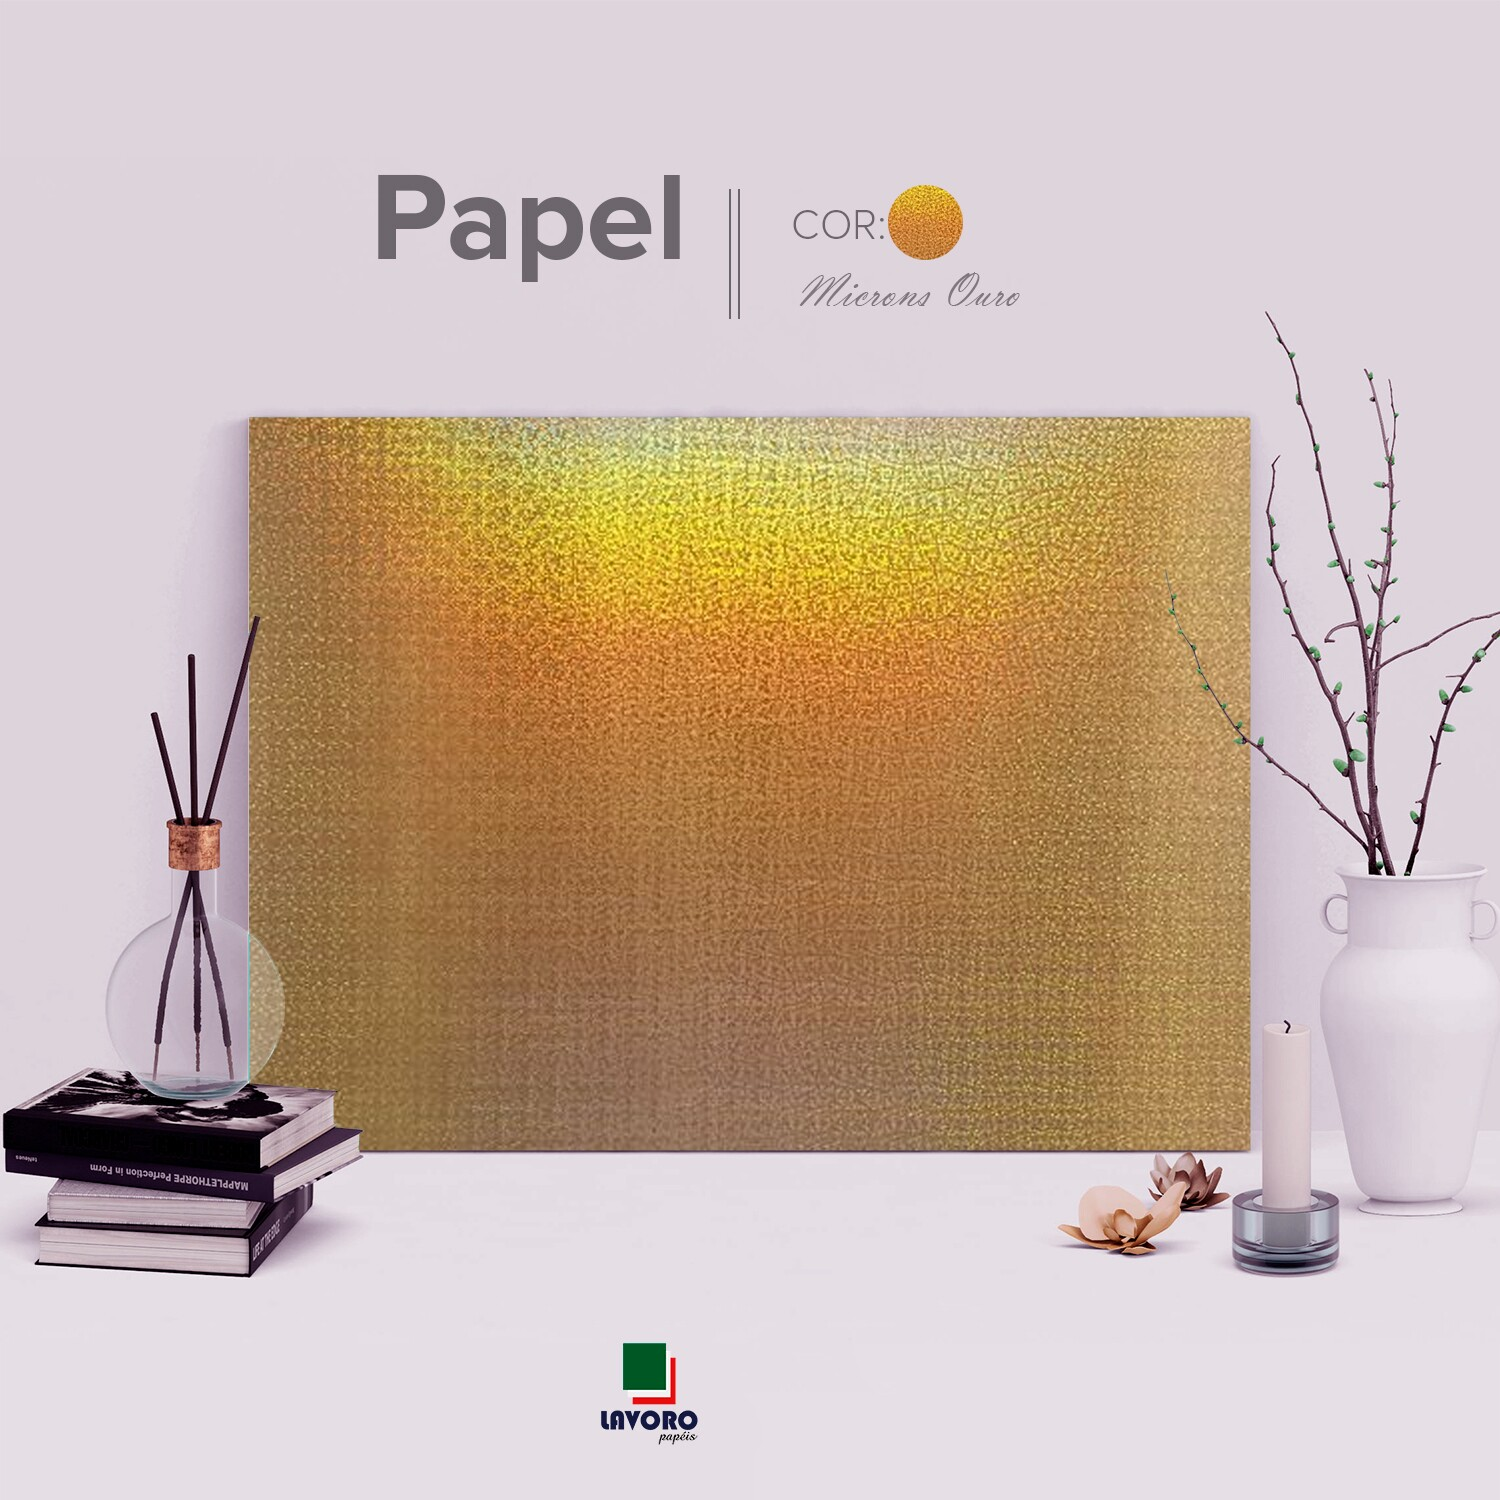 Papel Holográfico 180g 30,5x30,5 - Microns Ouro